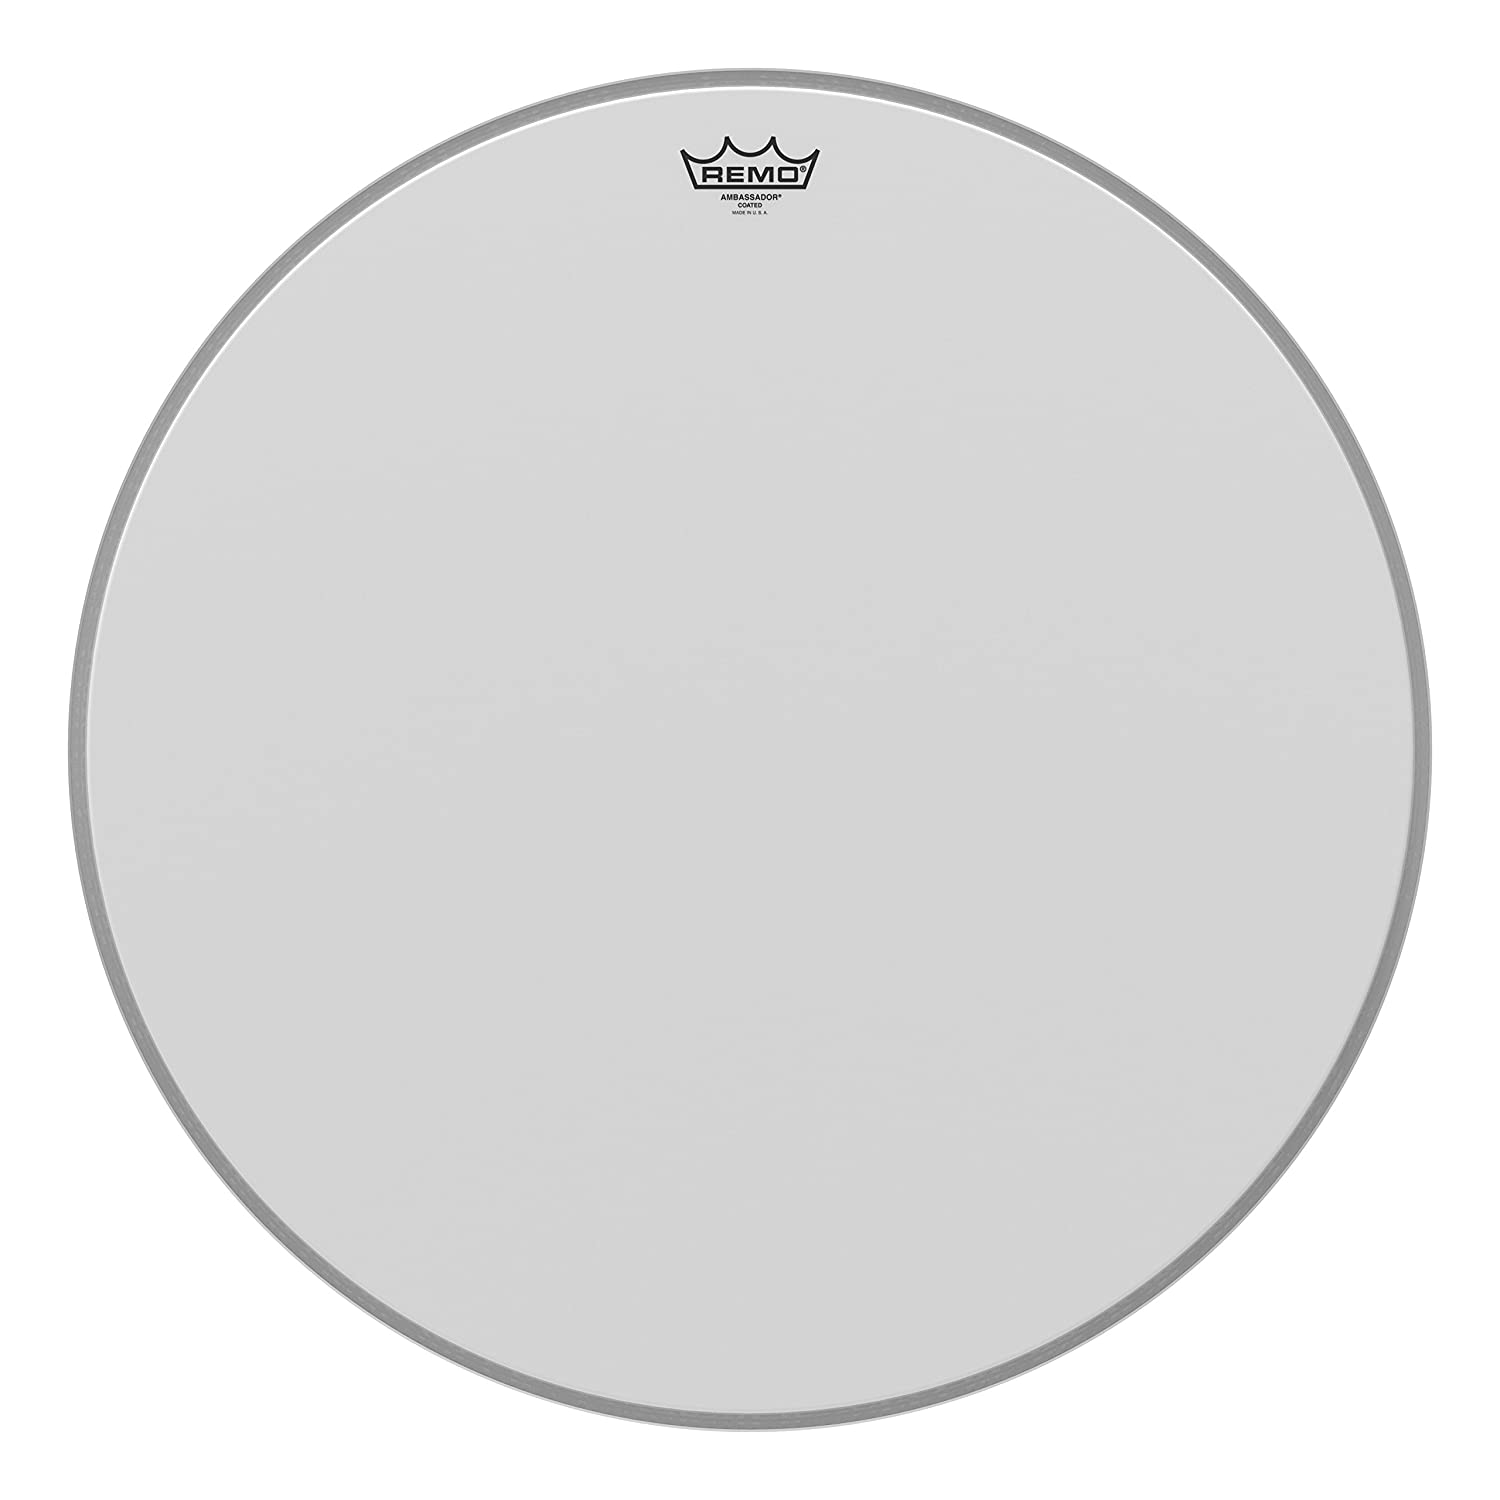 Remo BA0112-00 Coated Ambassador Drum Head, 14-Inch BA-0114-00